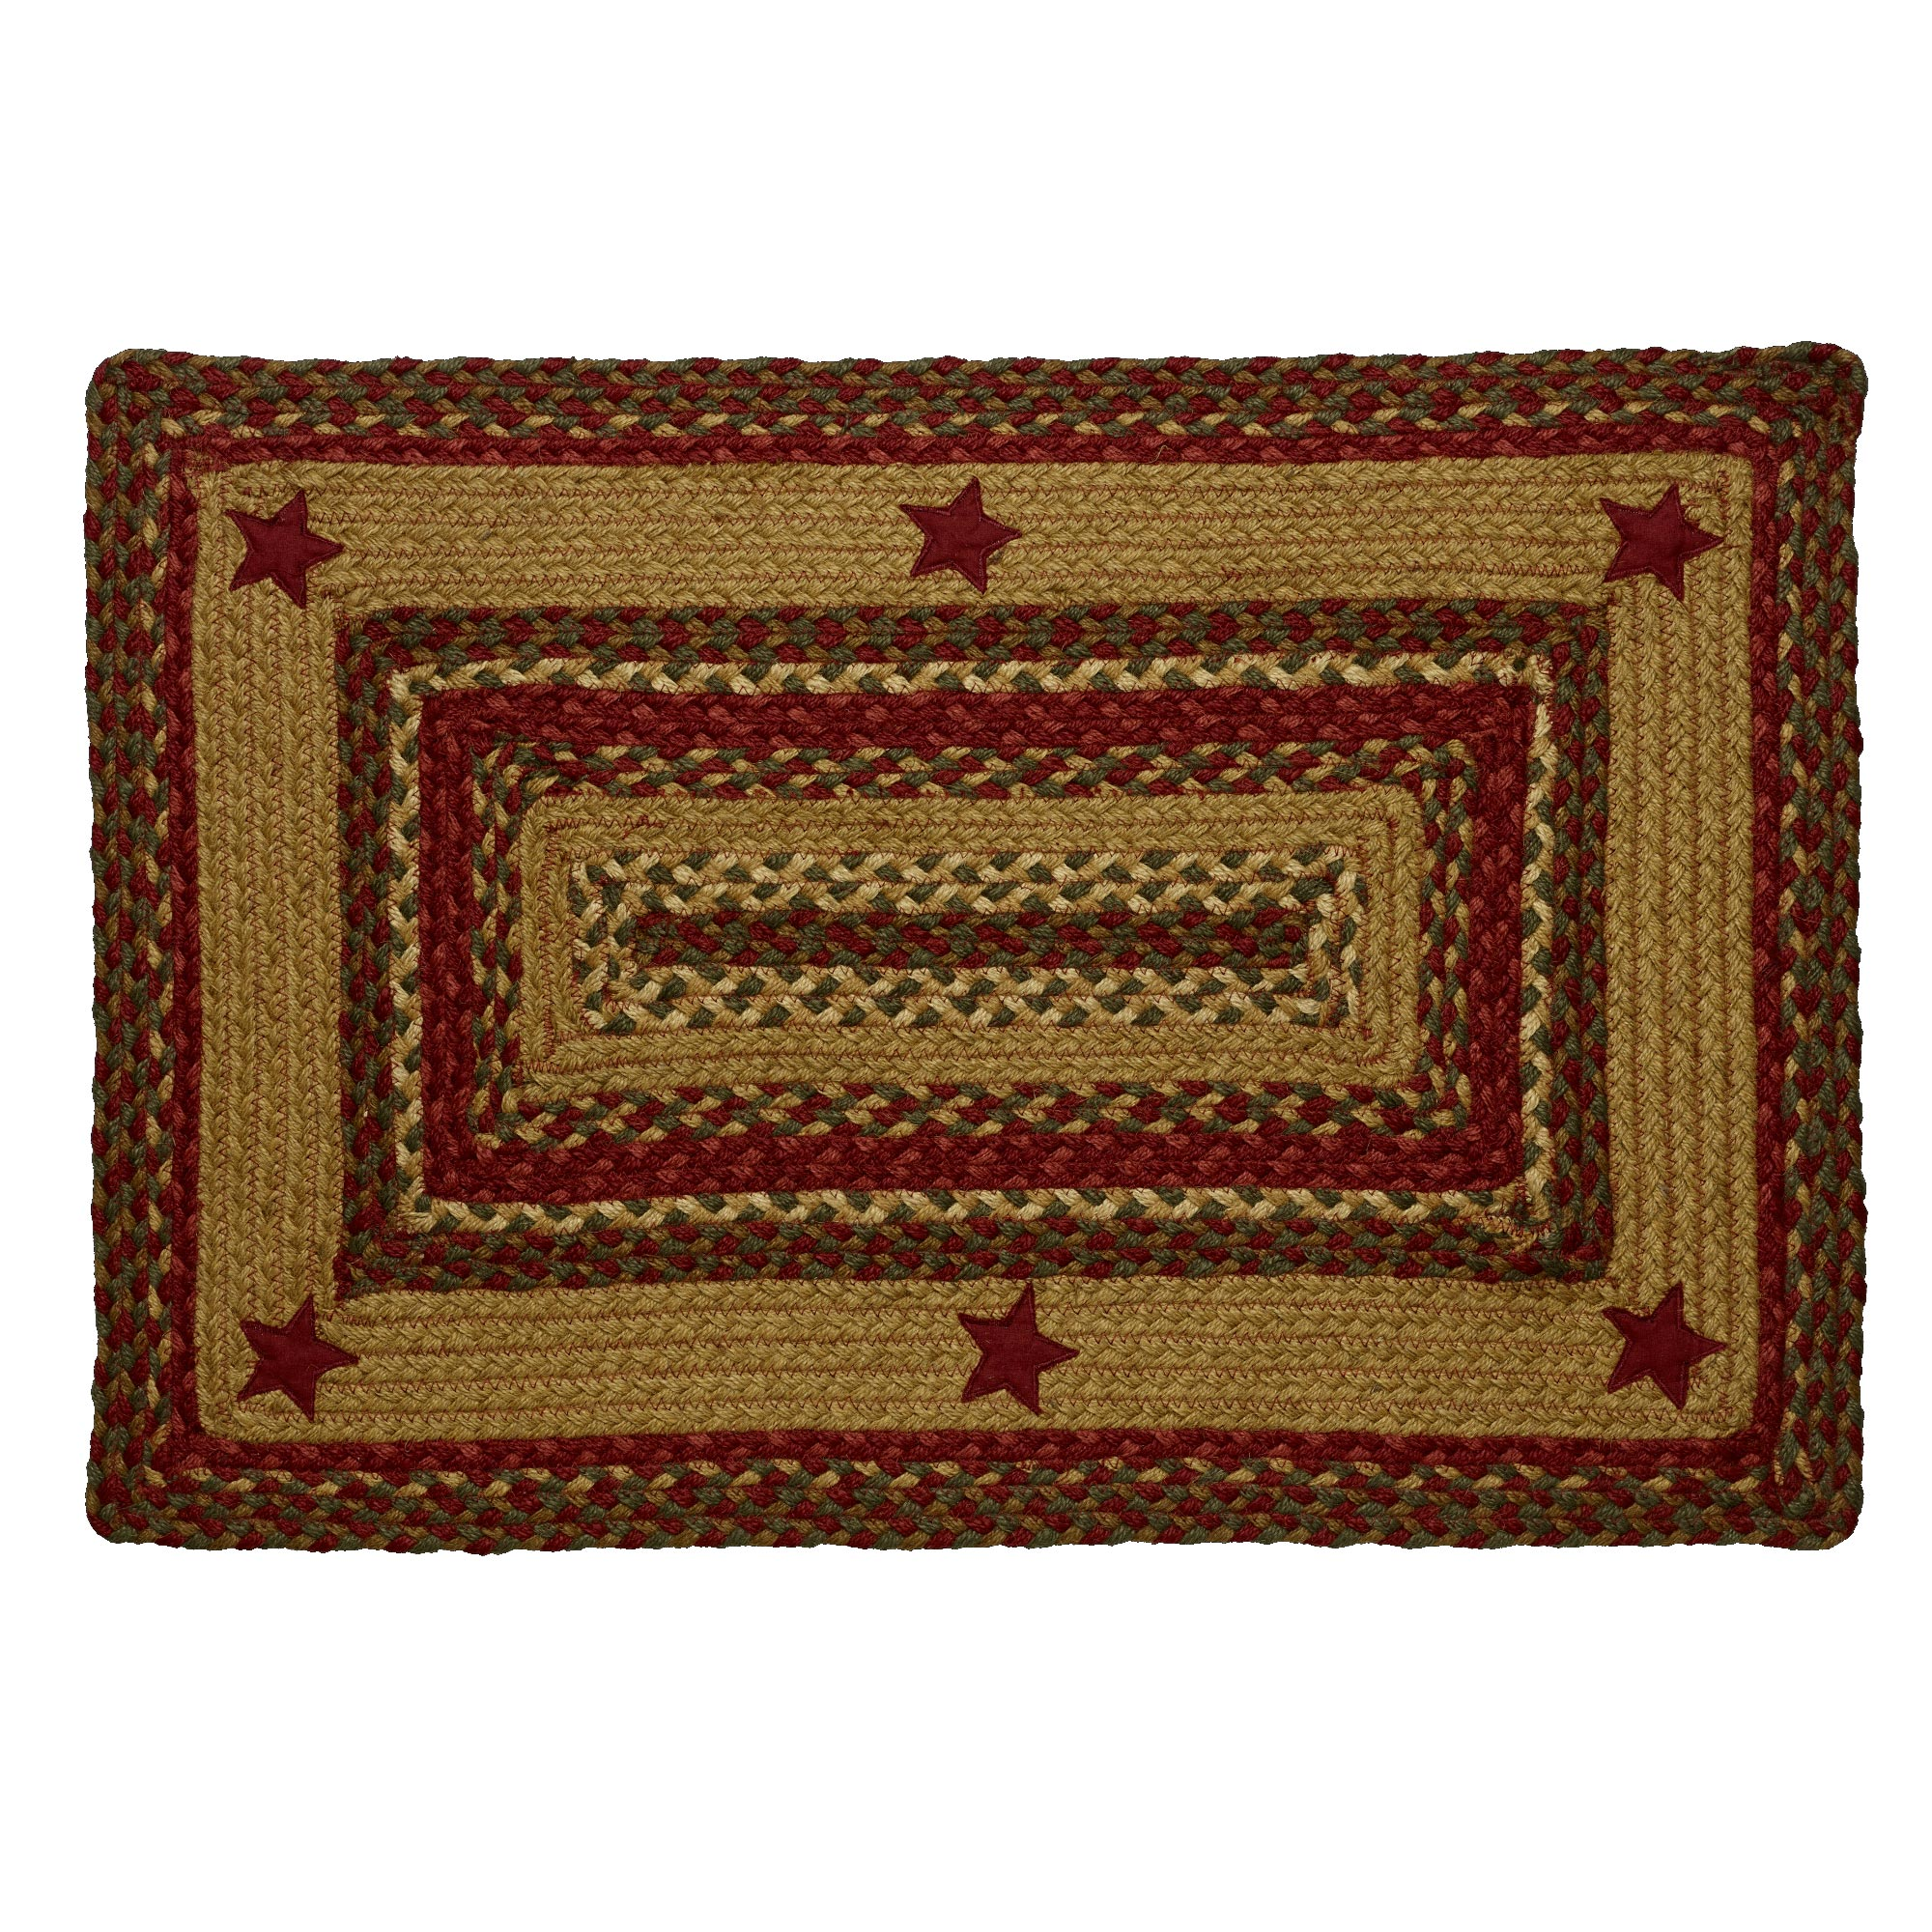 Braided Rug Cinnamon Star Jute Country Primitive IHF by IHF Limited